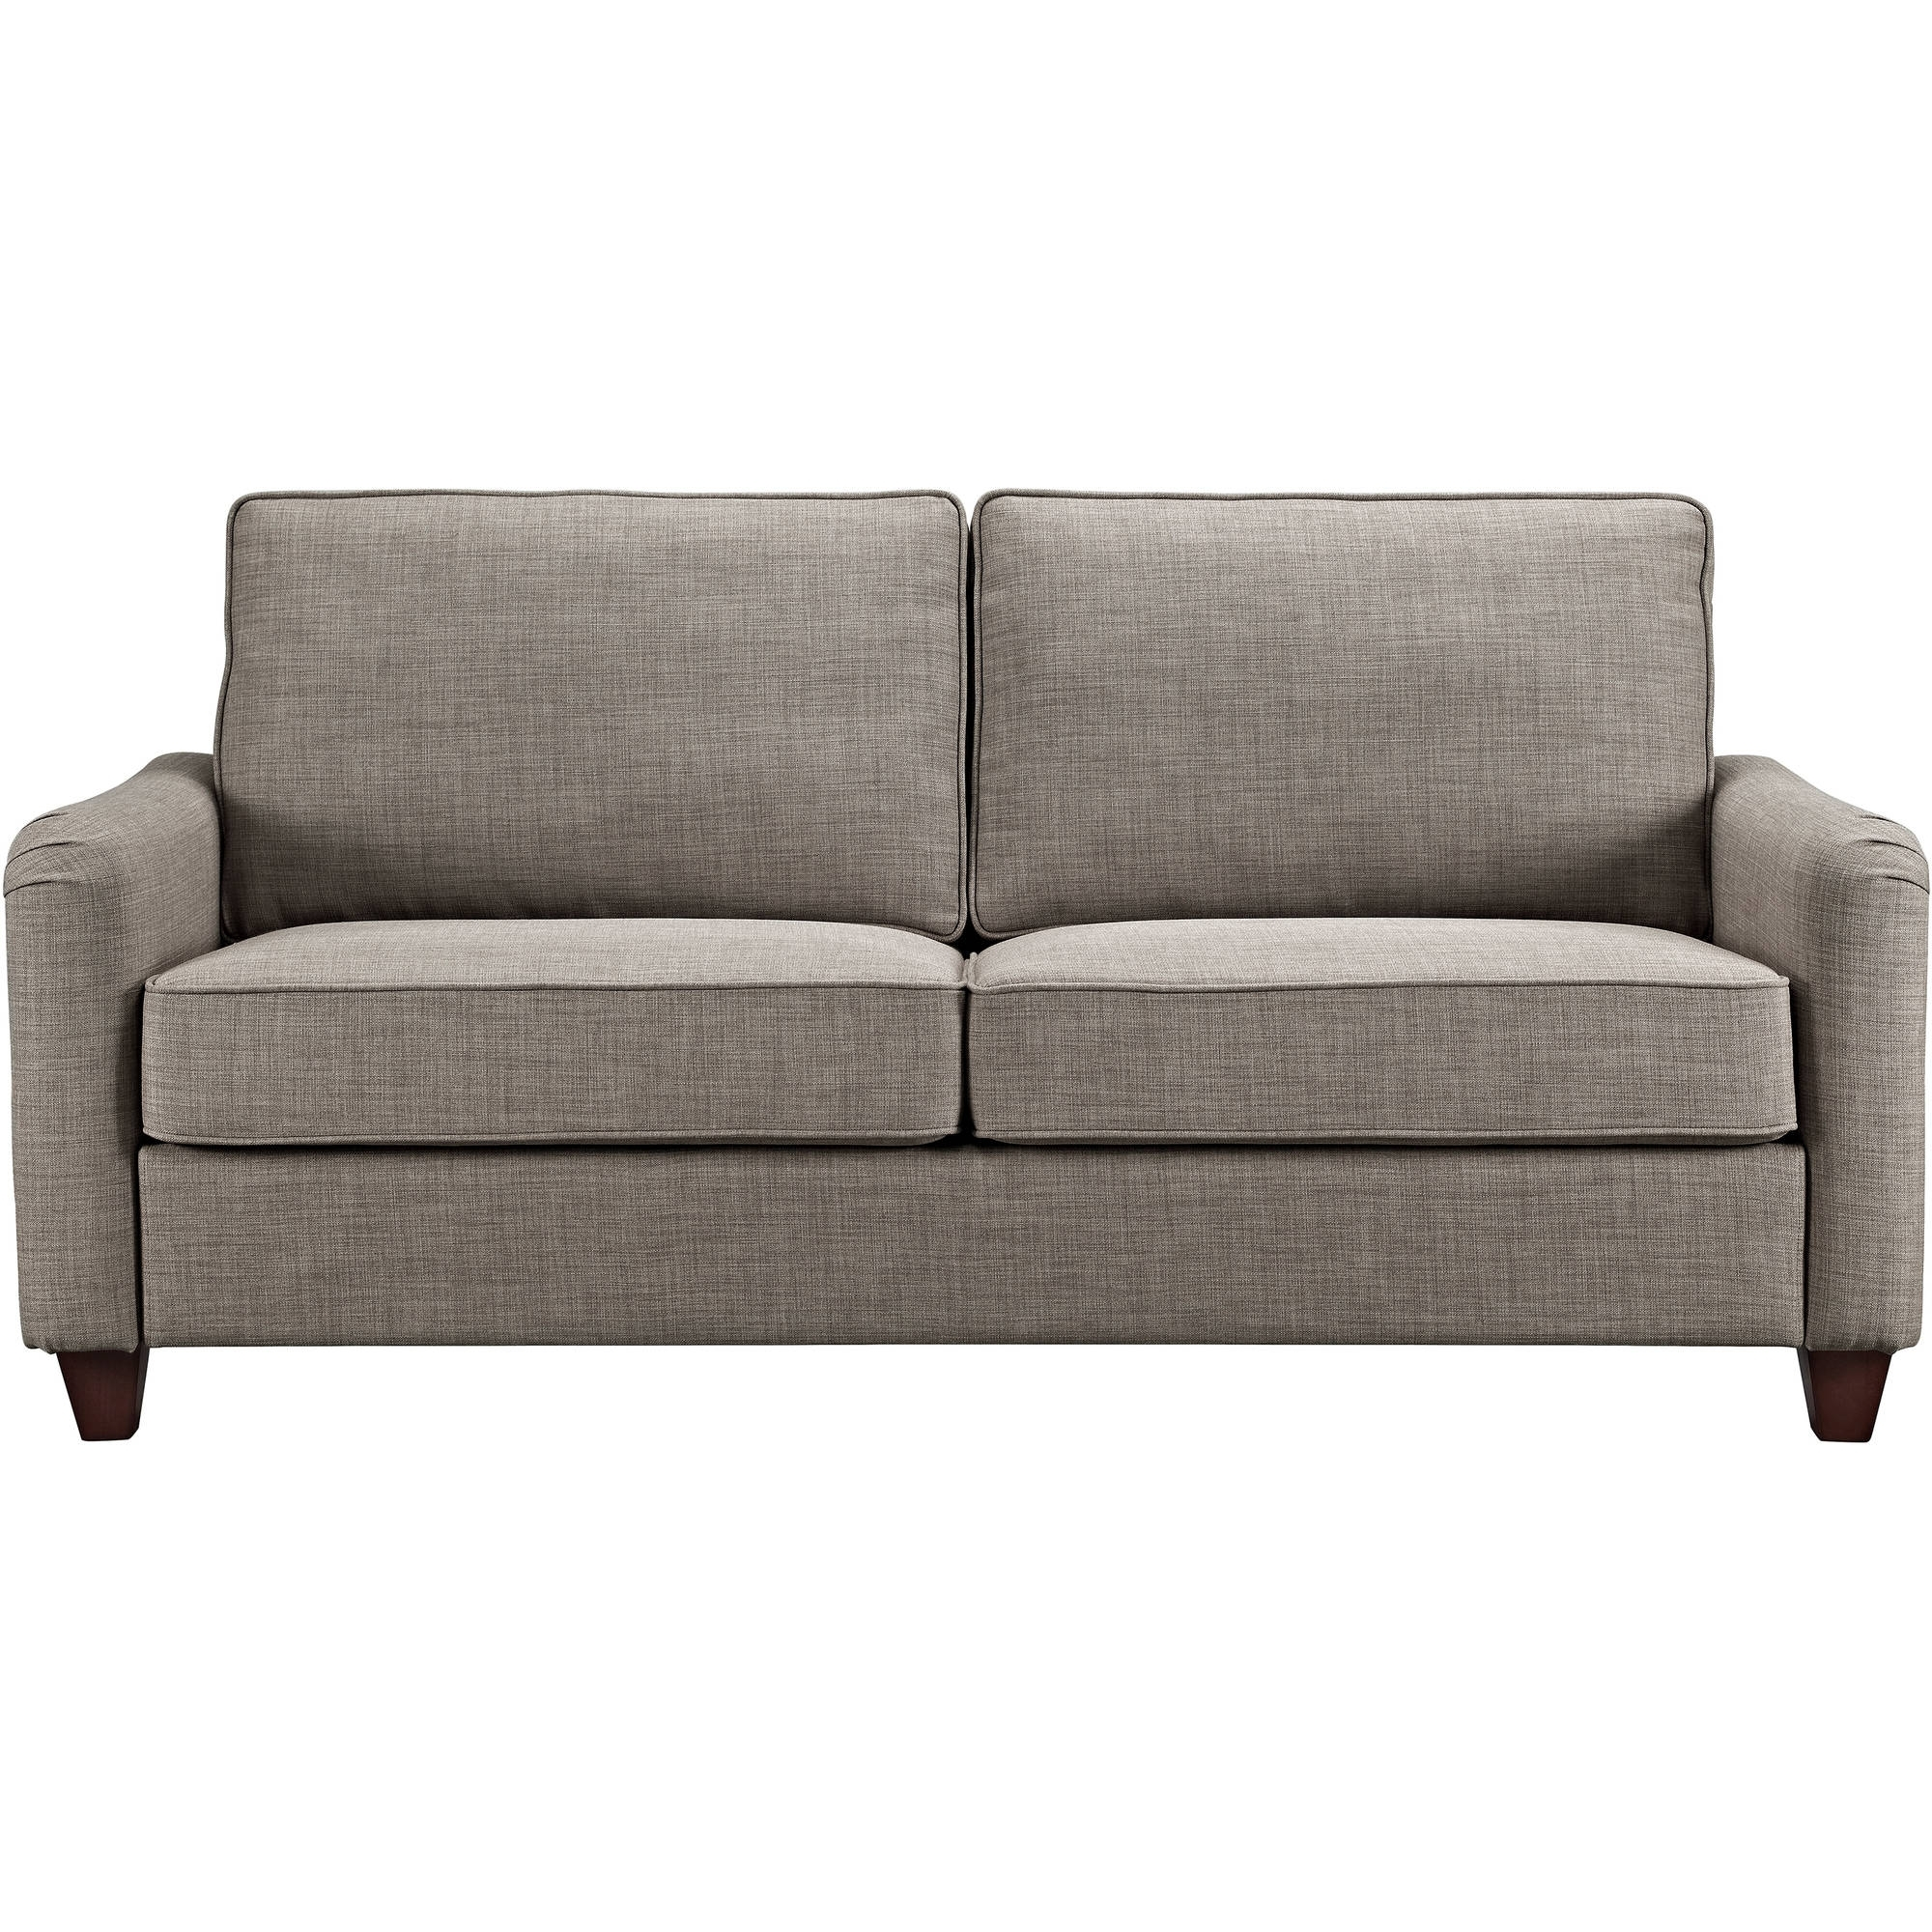 Sofas & Couches – Walmart Pertaining To Sectional Sofas At Walmart (View 11 of 15)